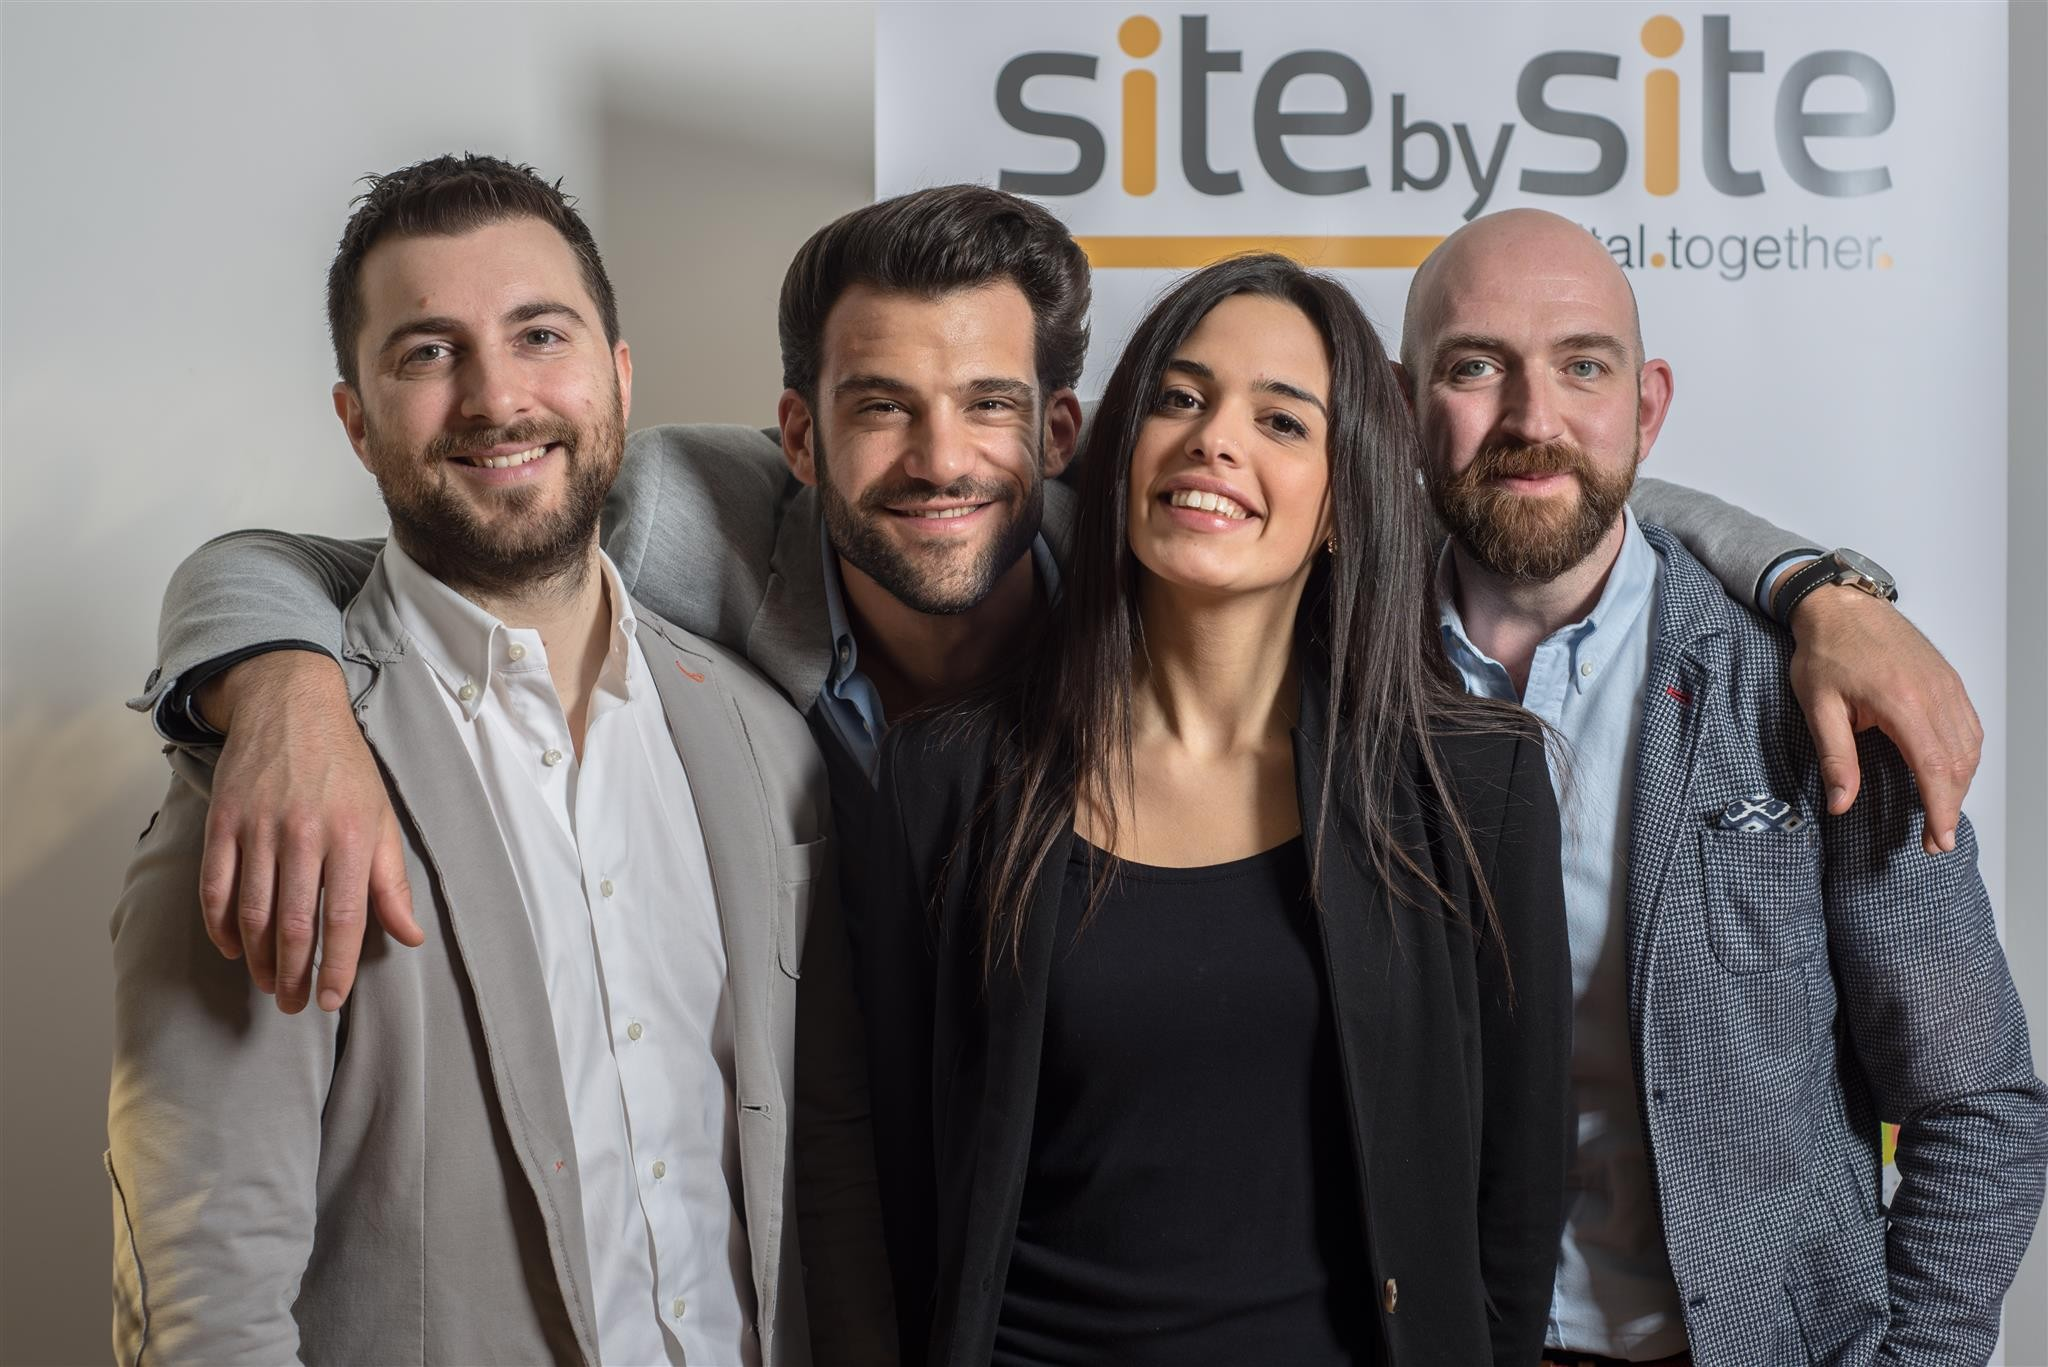 Running together contro il melanoma-Site by site srl